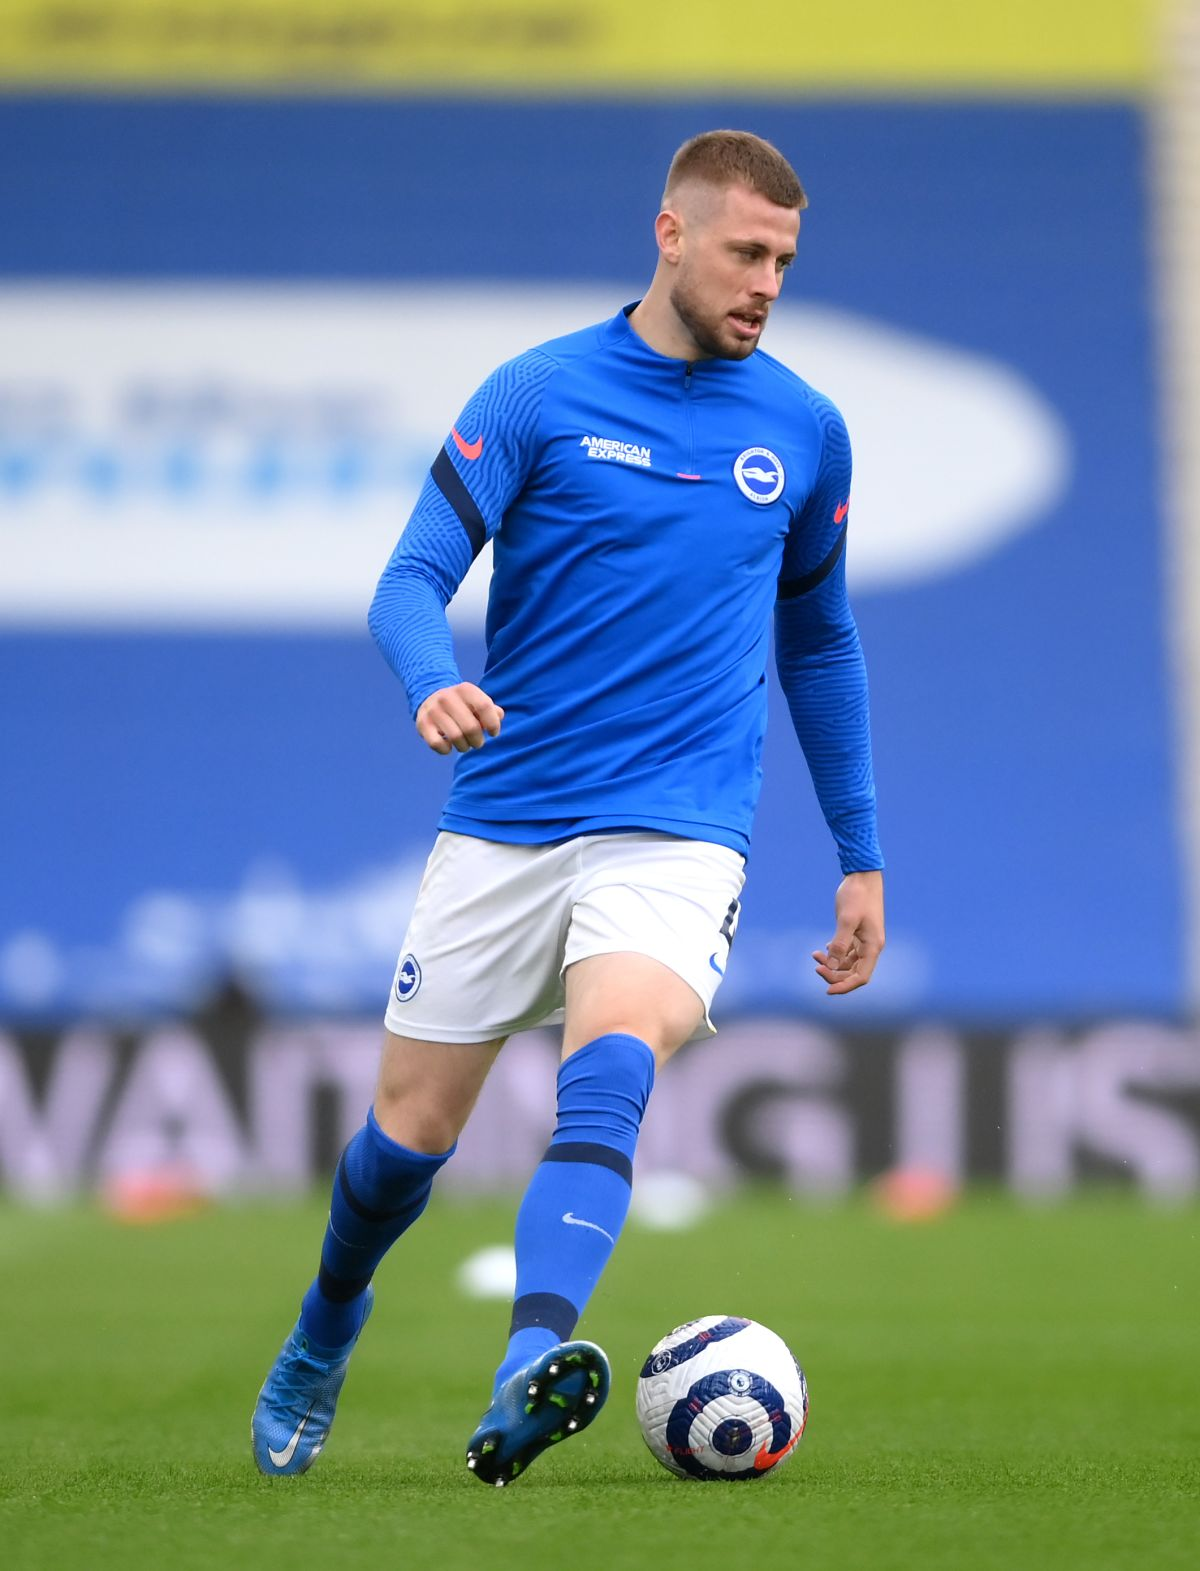 Defender Adam Webster signs new five-year deal at Brighton